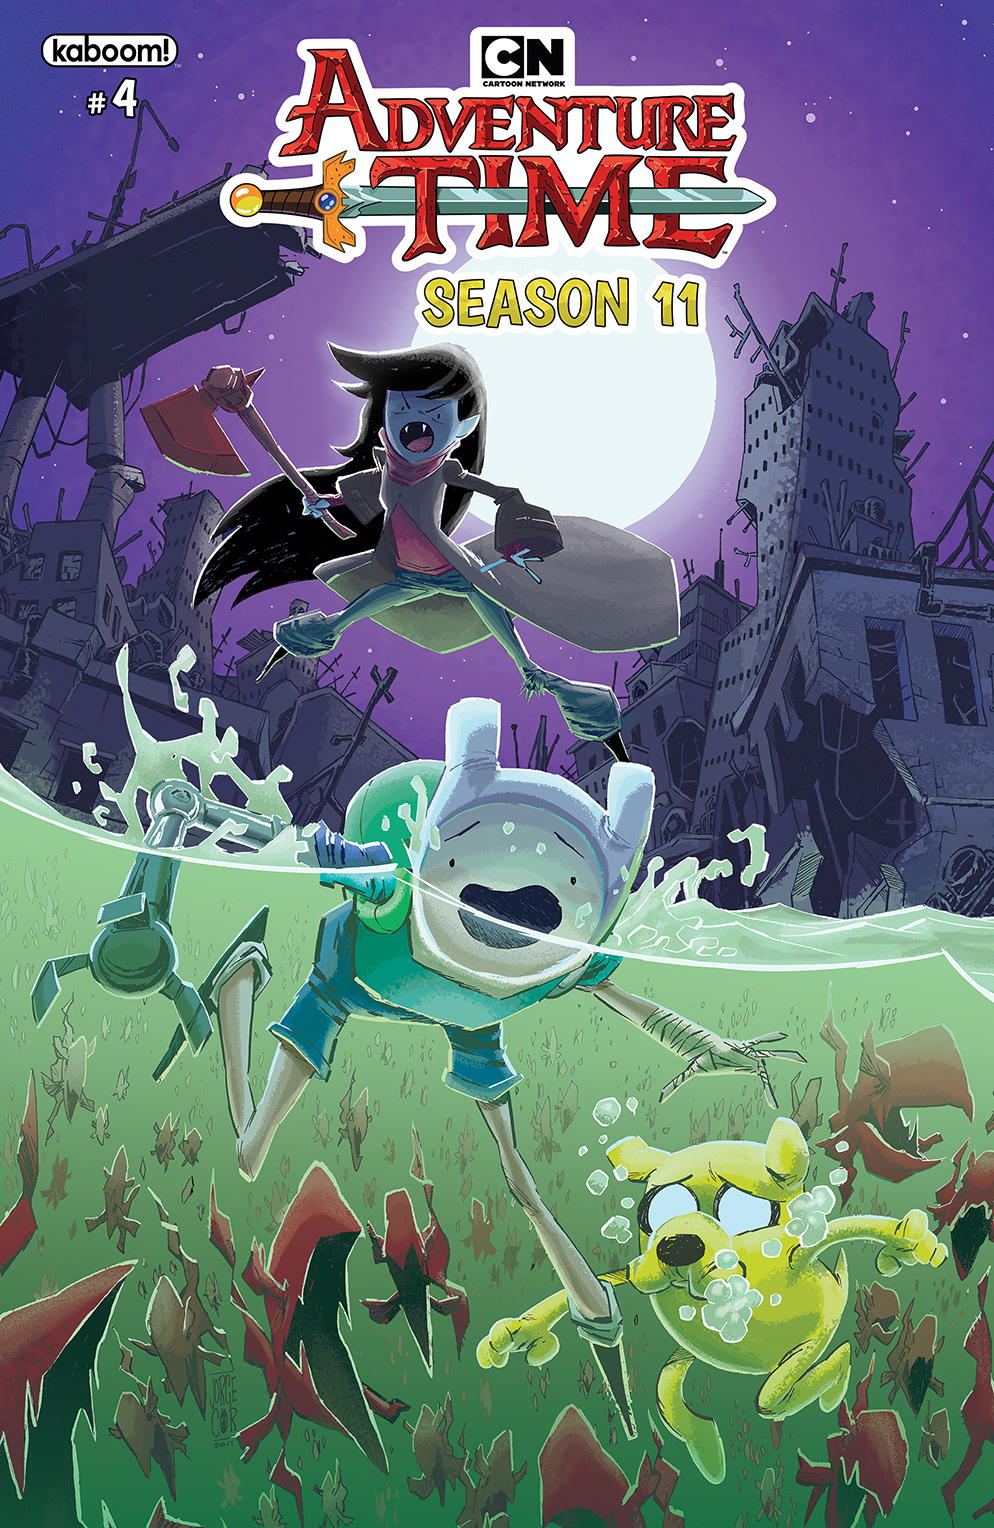 ADVENTURE TIME SEASON 11 #4 MAIN